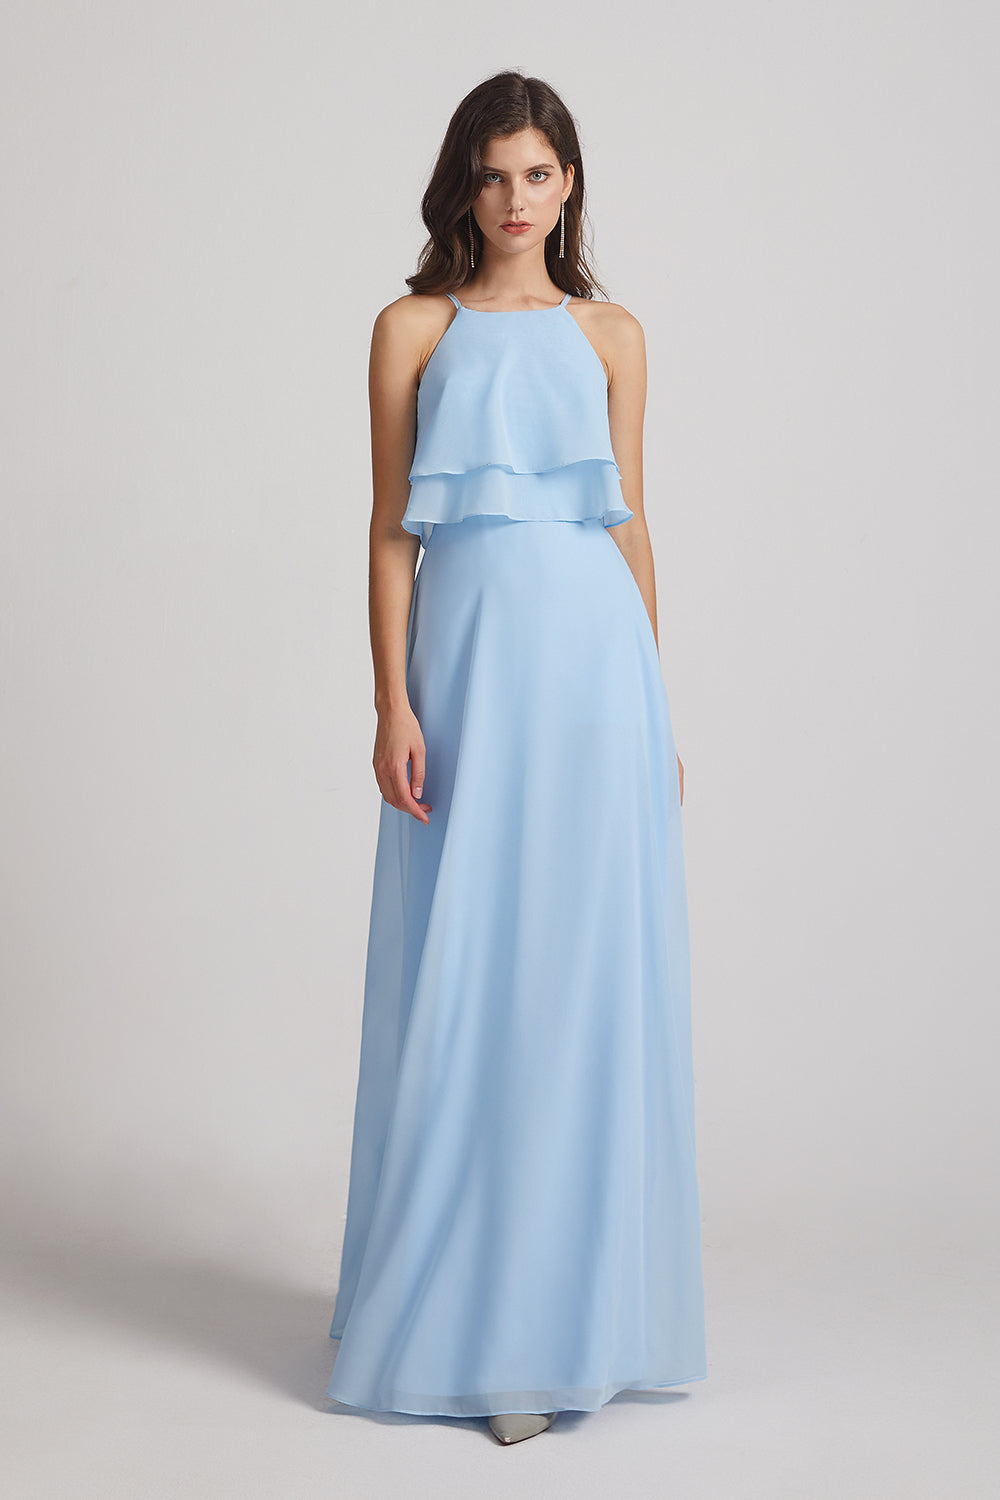 pleated chiffon bridesmaid gown